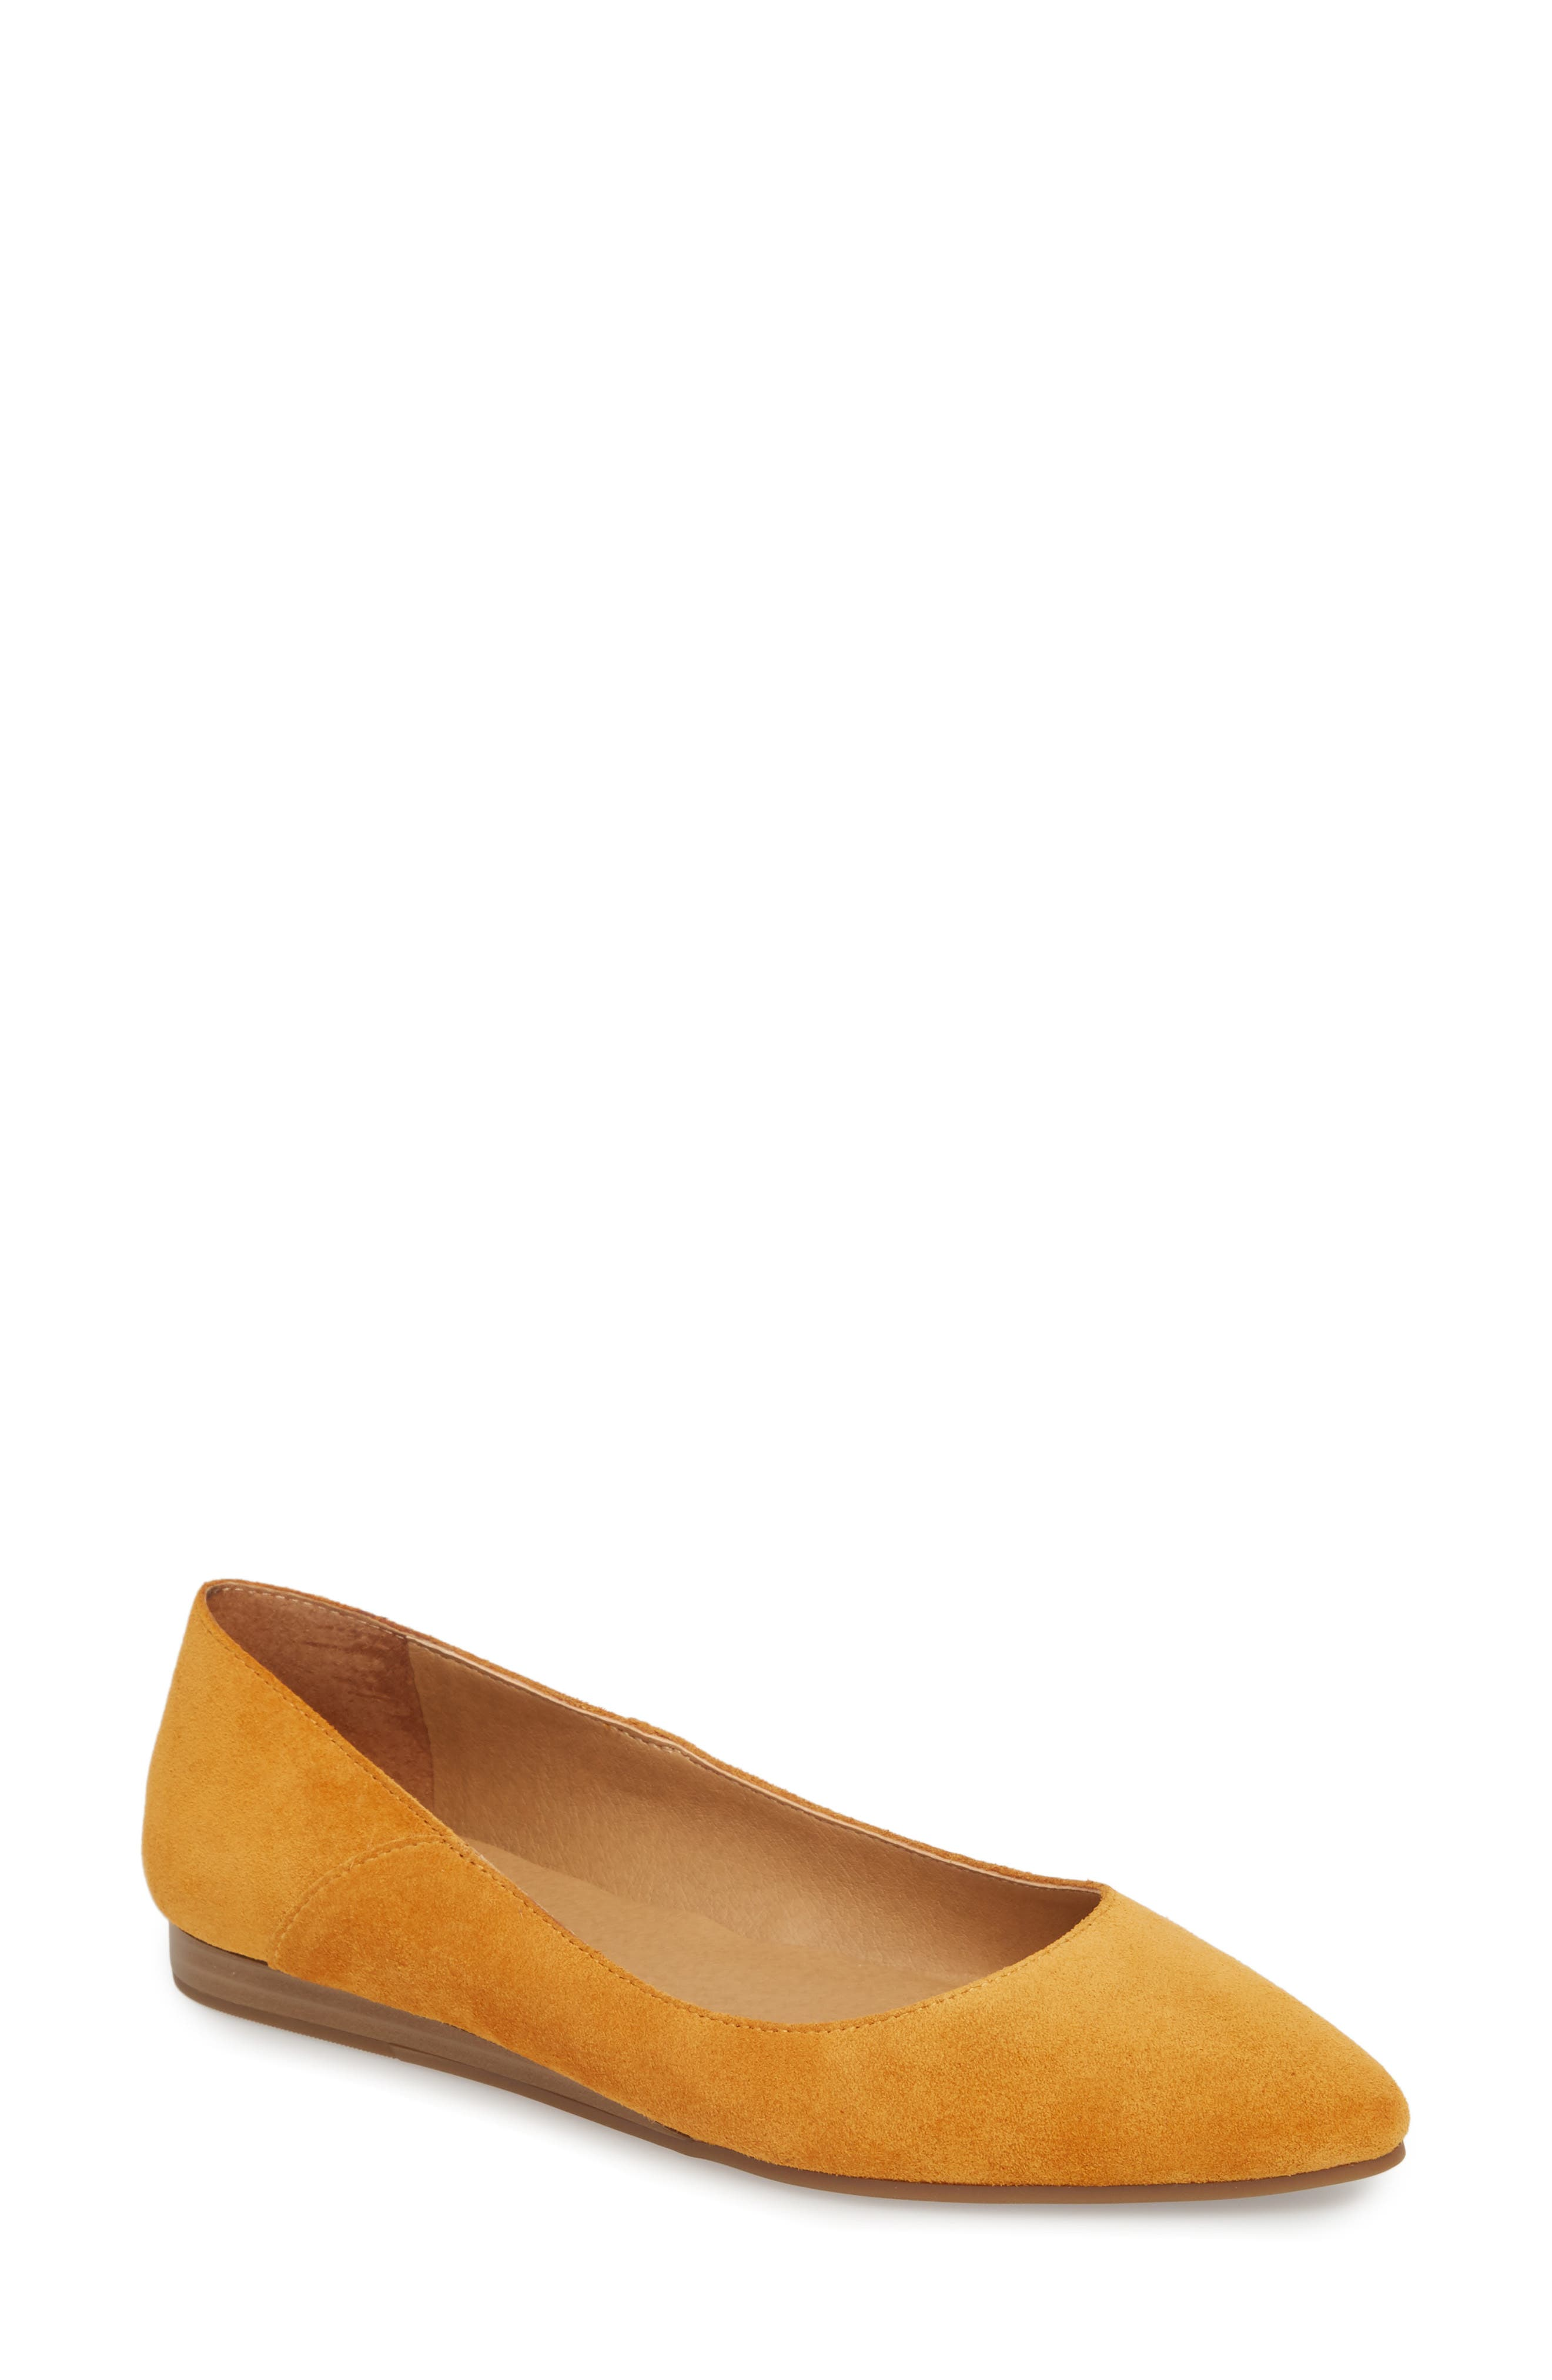 Bylando Flat,                             Main thumbnail 1, color,                             Inca Gold Suede